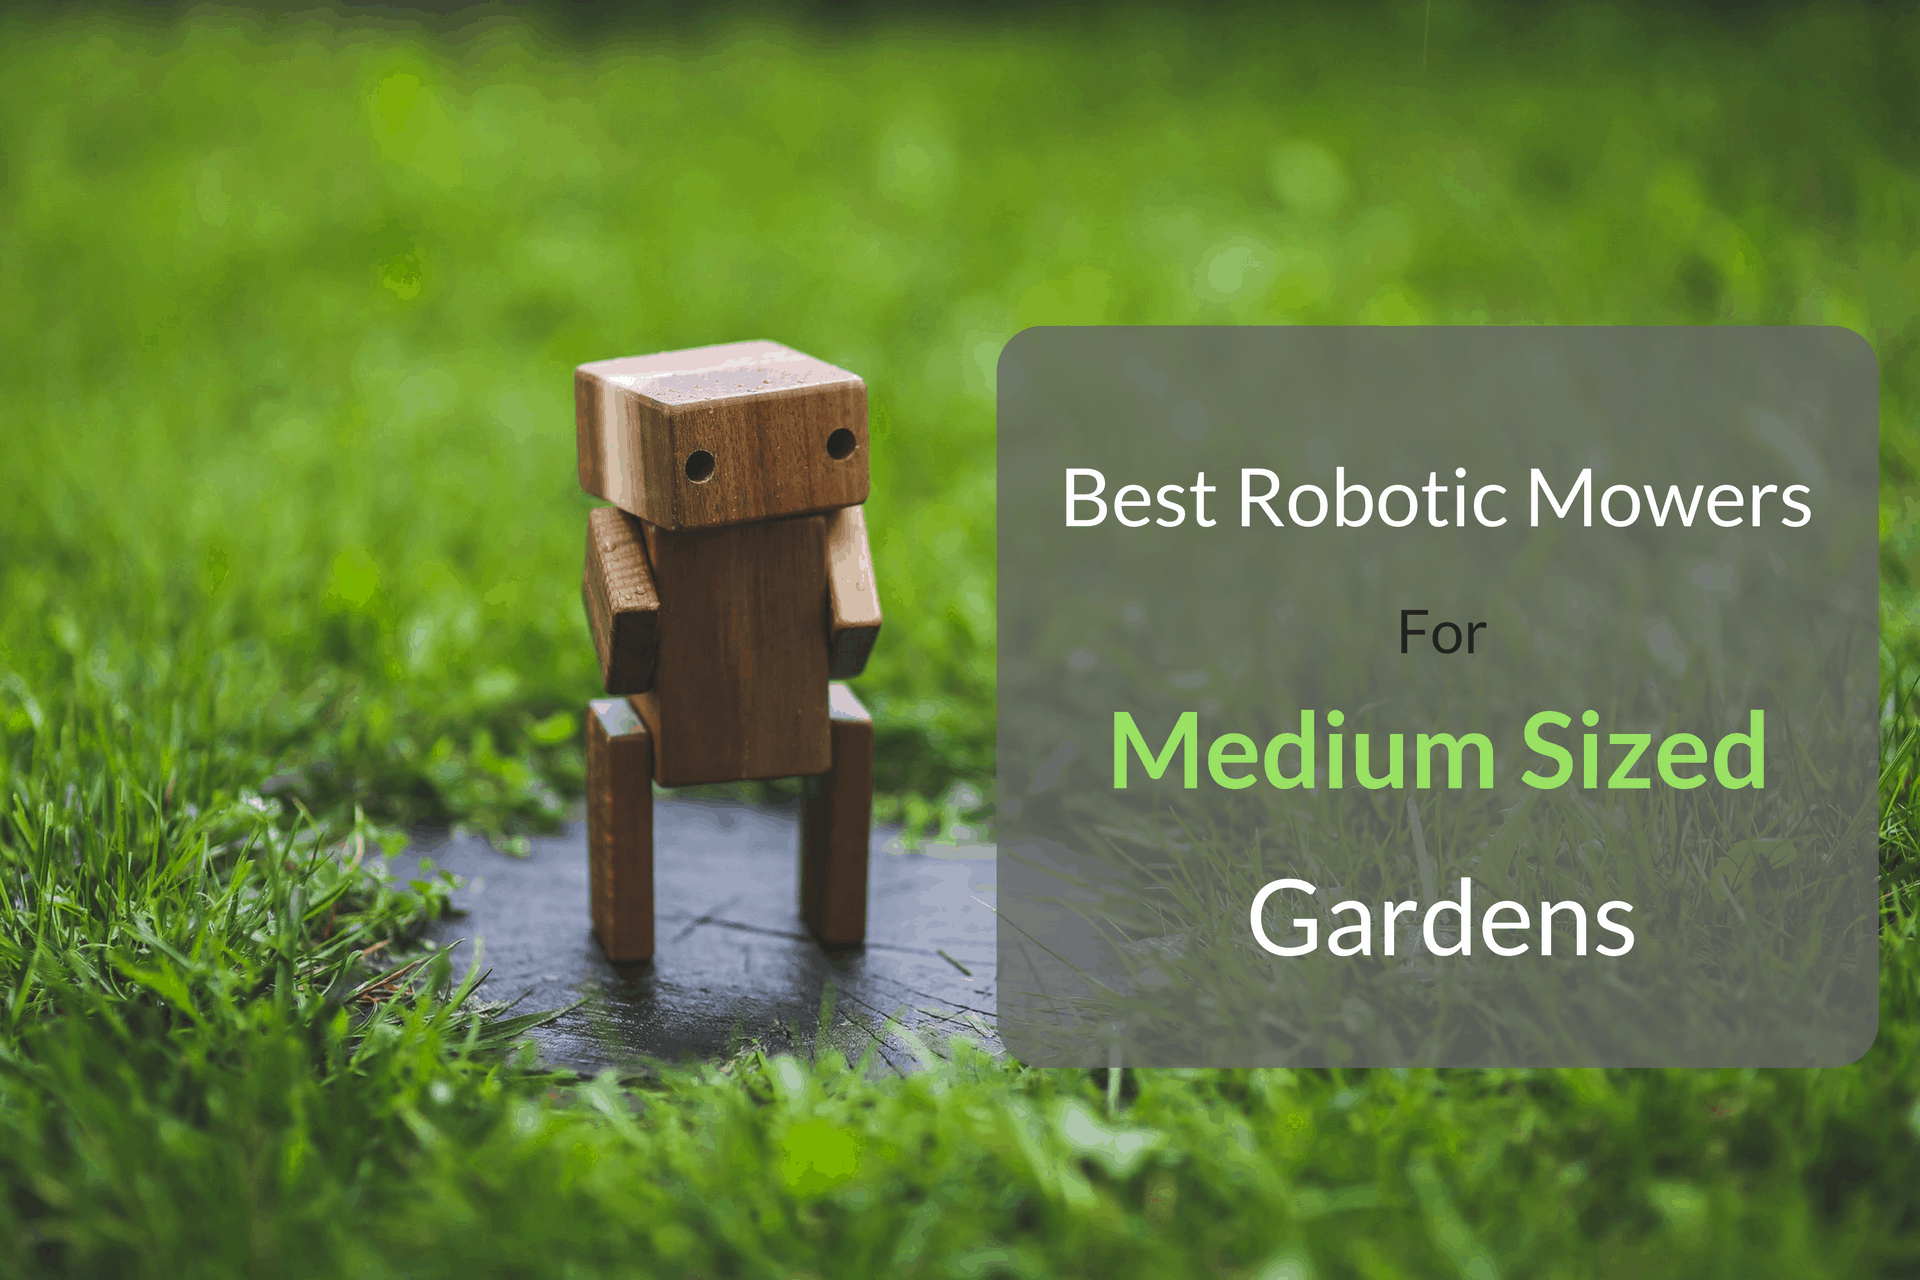 Best Robotic Mowers For Medium Sized Gardens